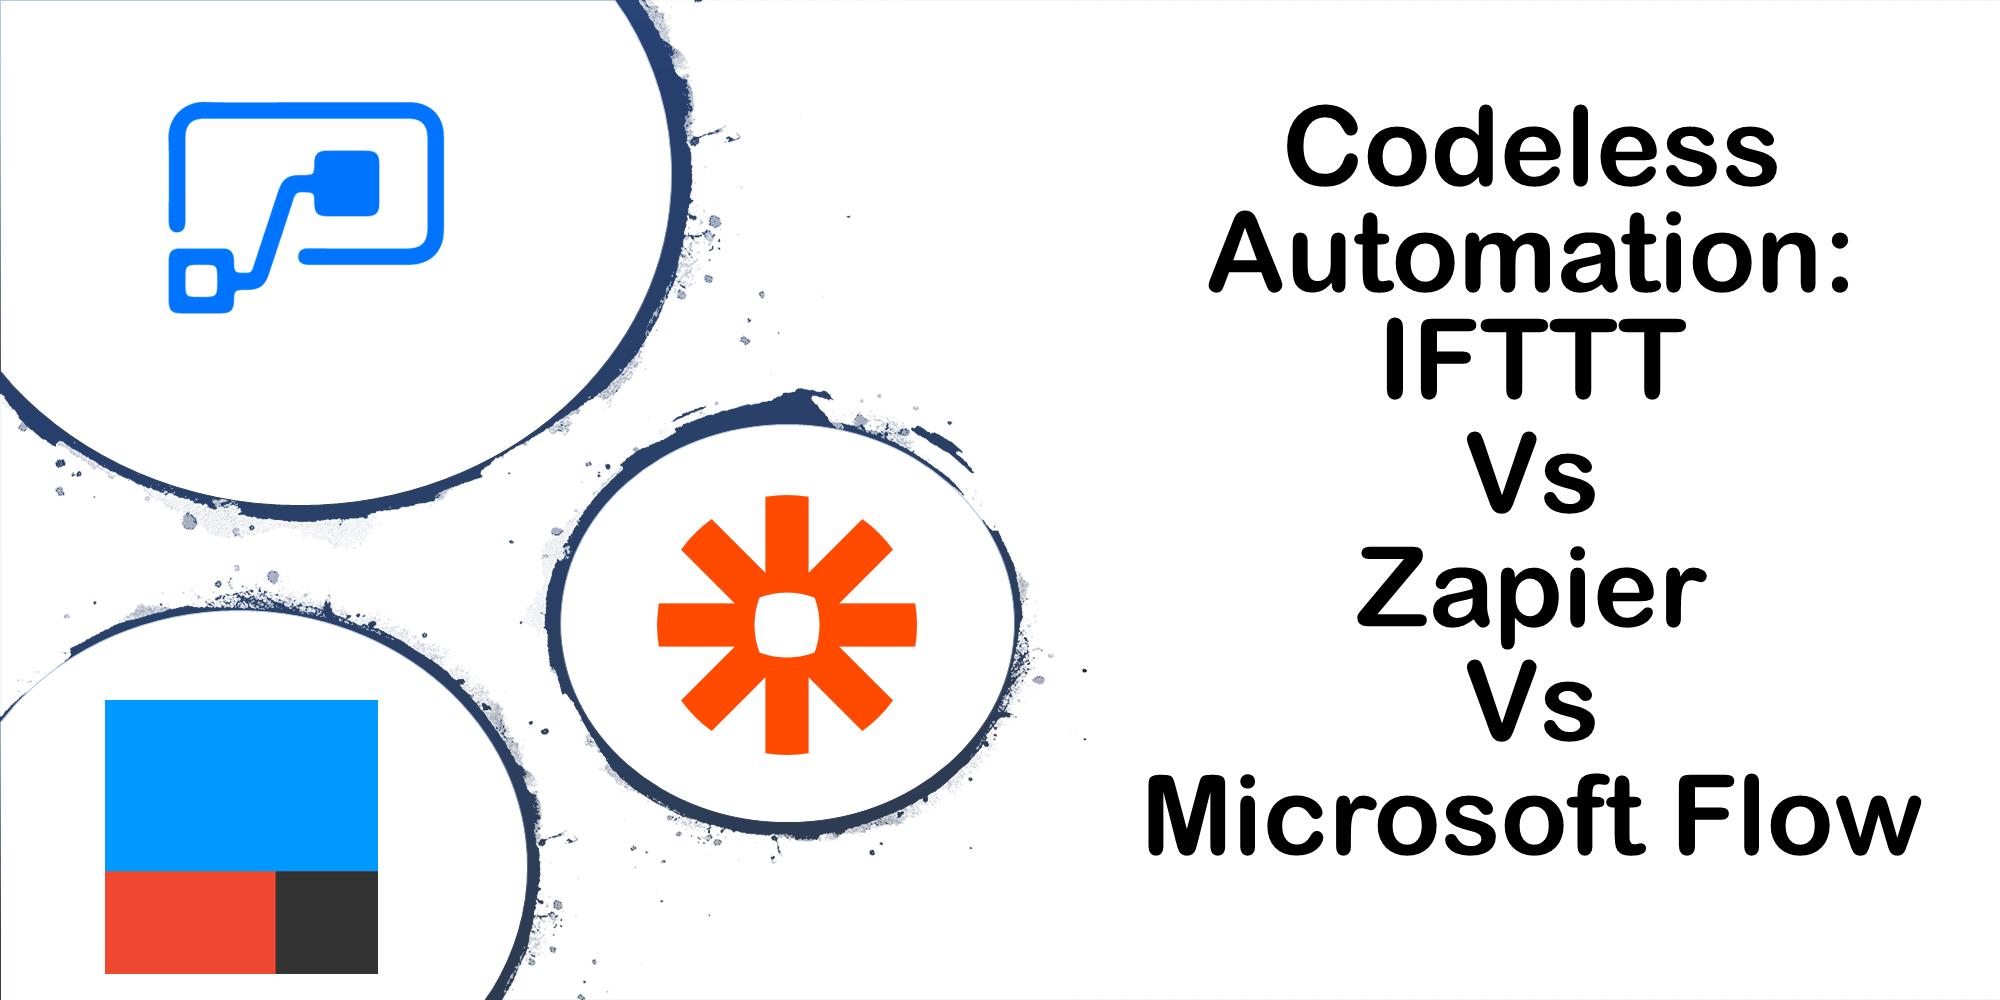 Microsoft Products Codeless Automation Ifttt Vs Zapier Vs Microsoft Flow